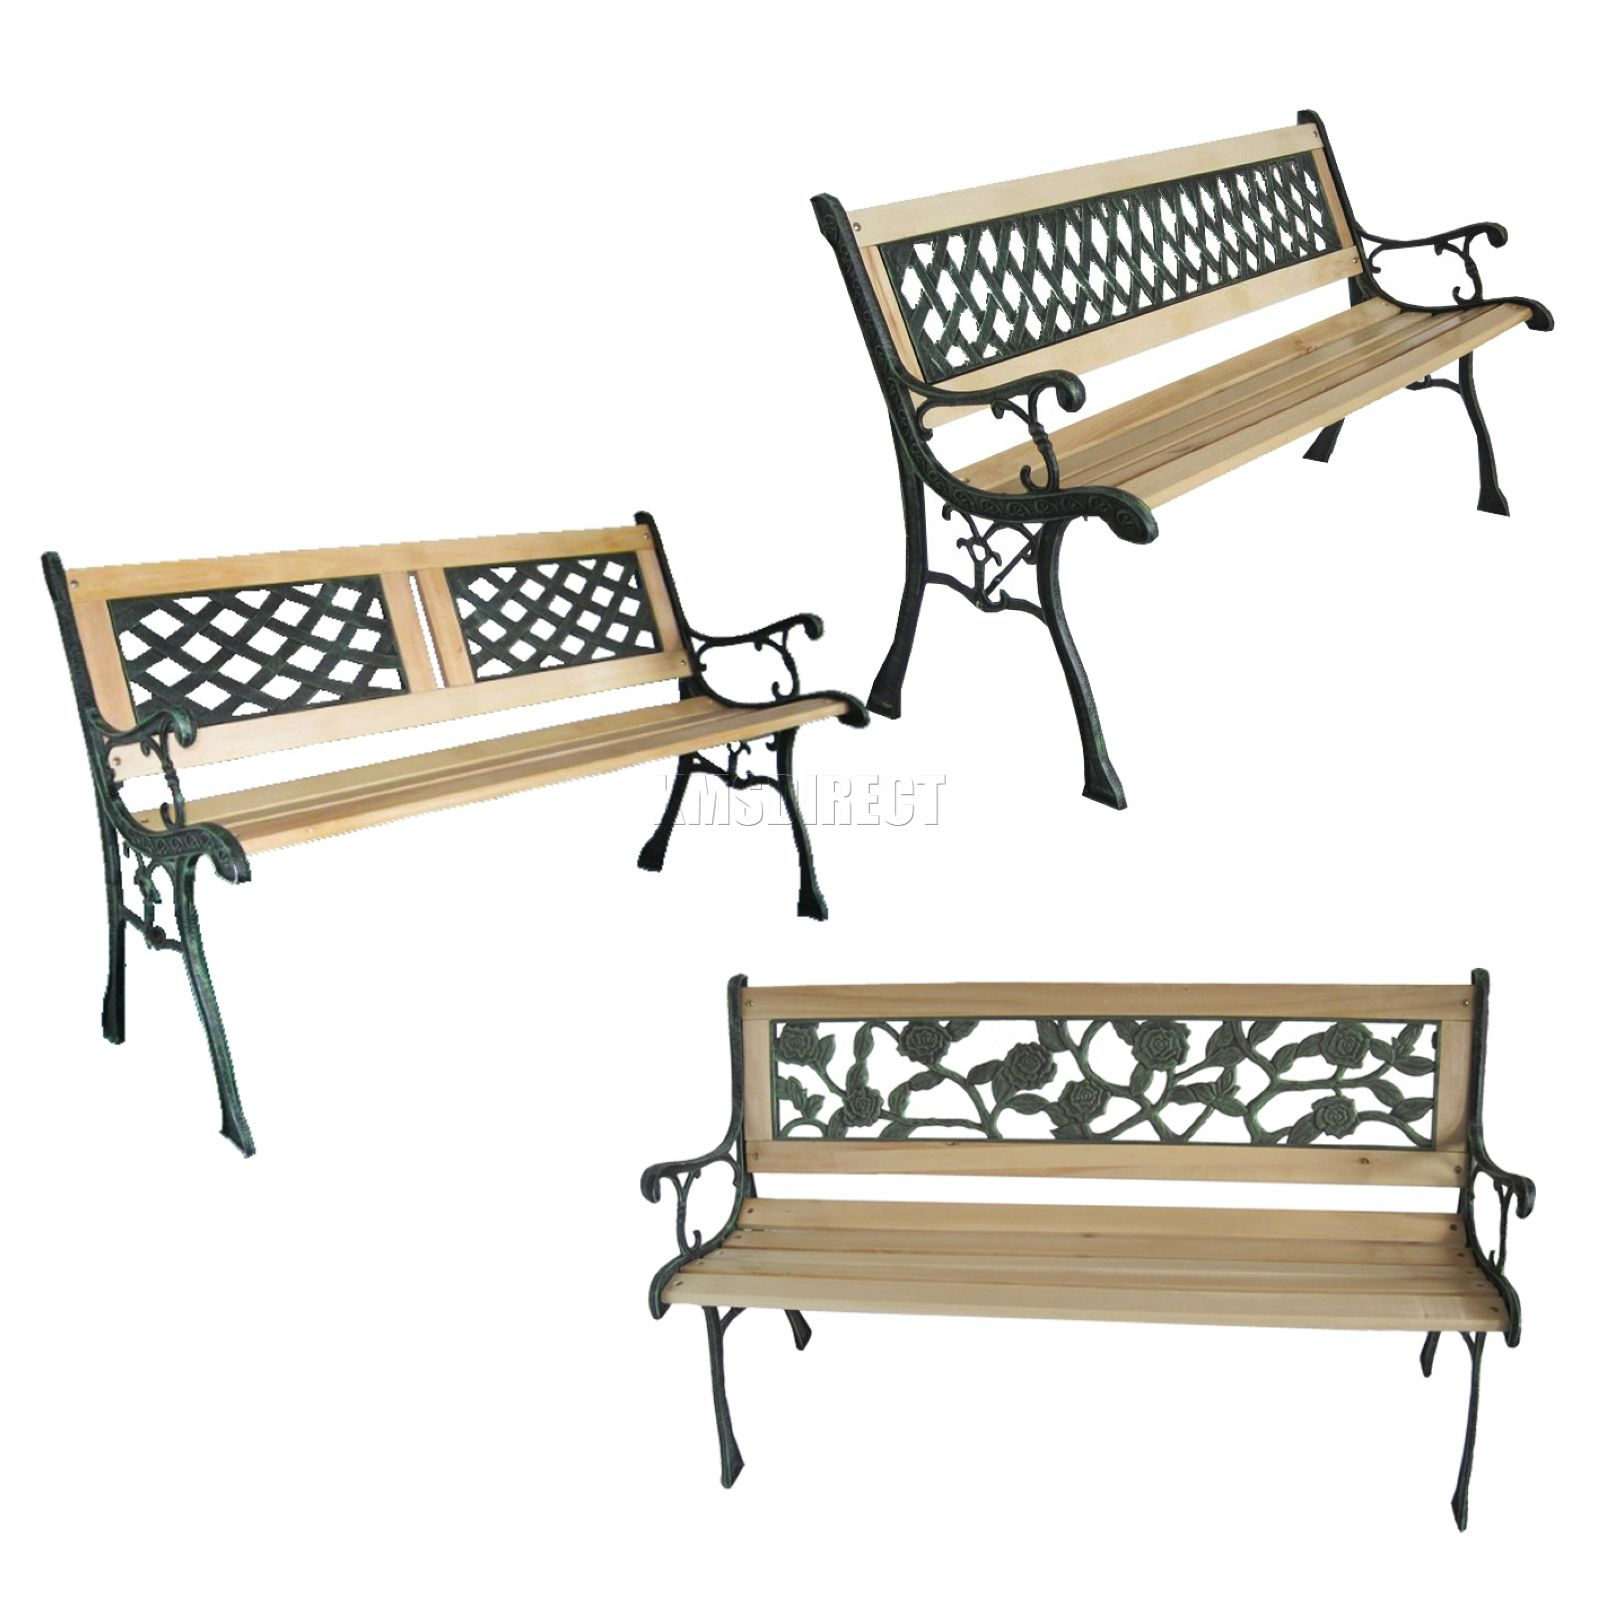 Outdoor Furniture Wooden 3 Seater Garden Bench with Cast Iron Legs Park Seat New